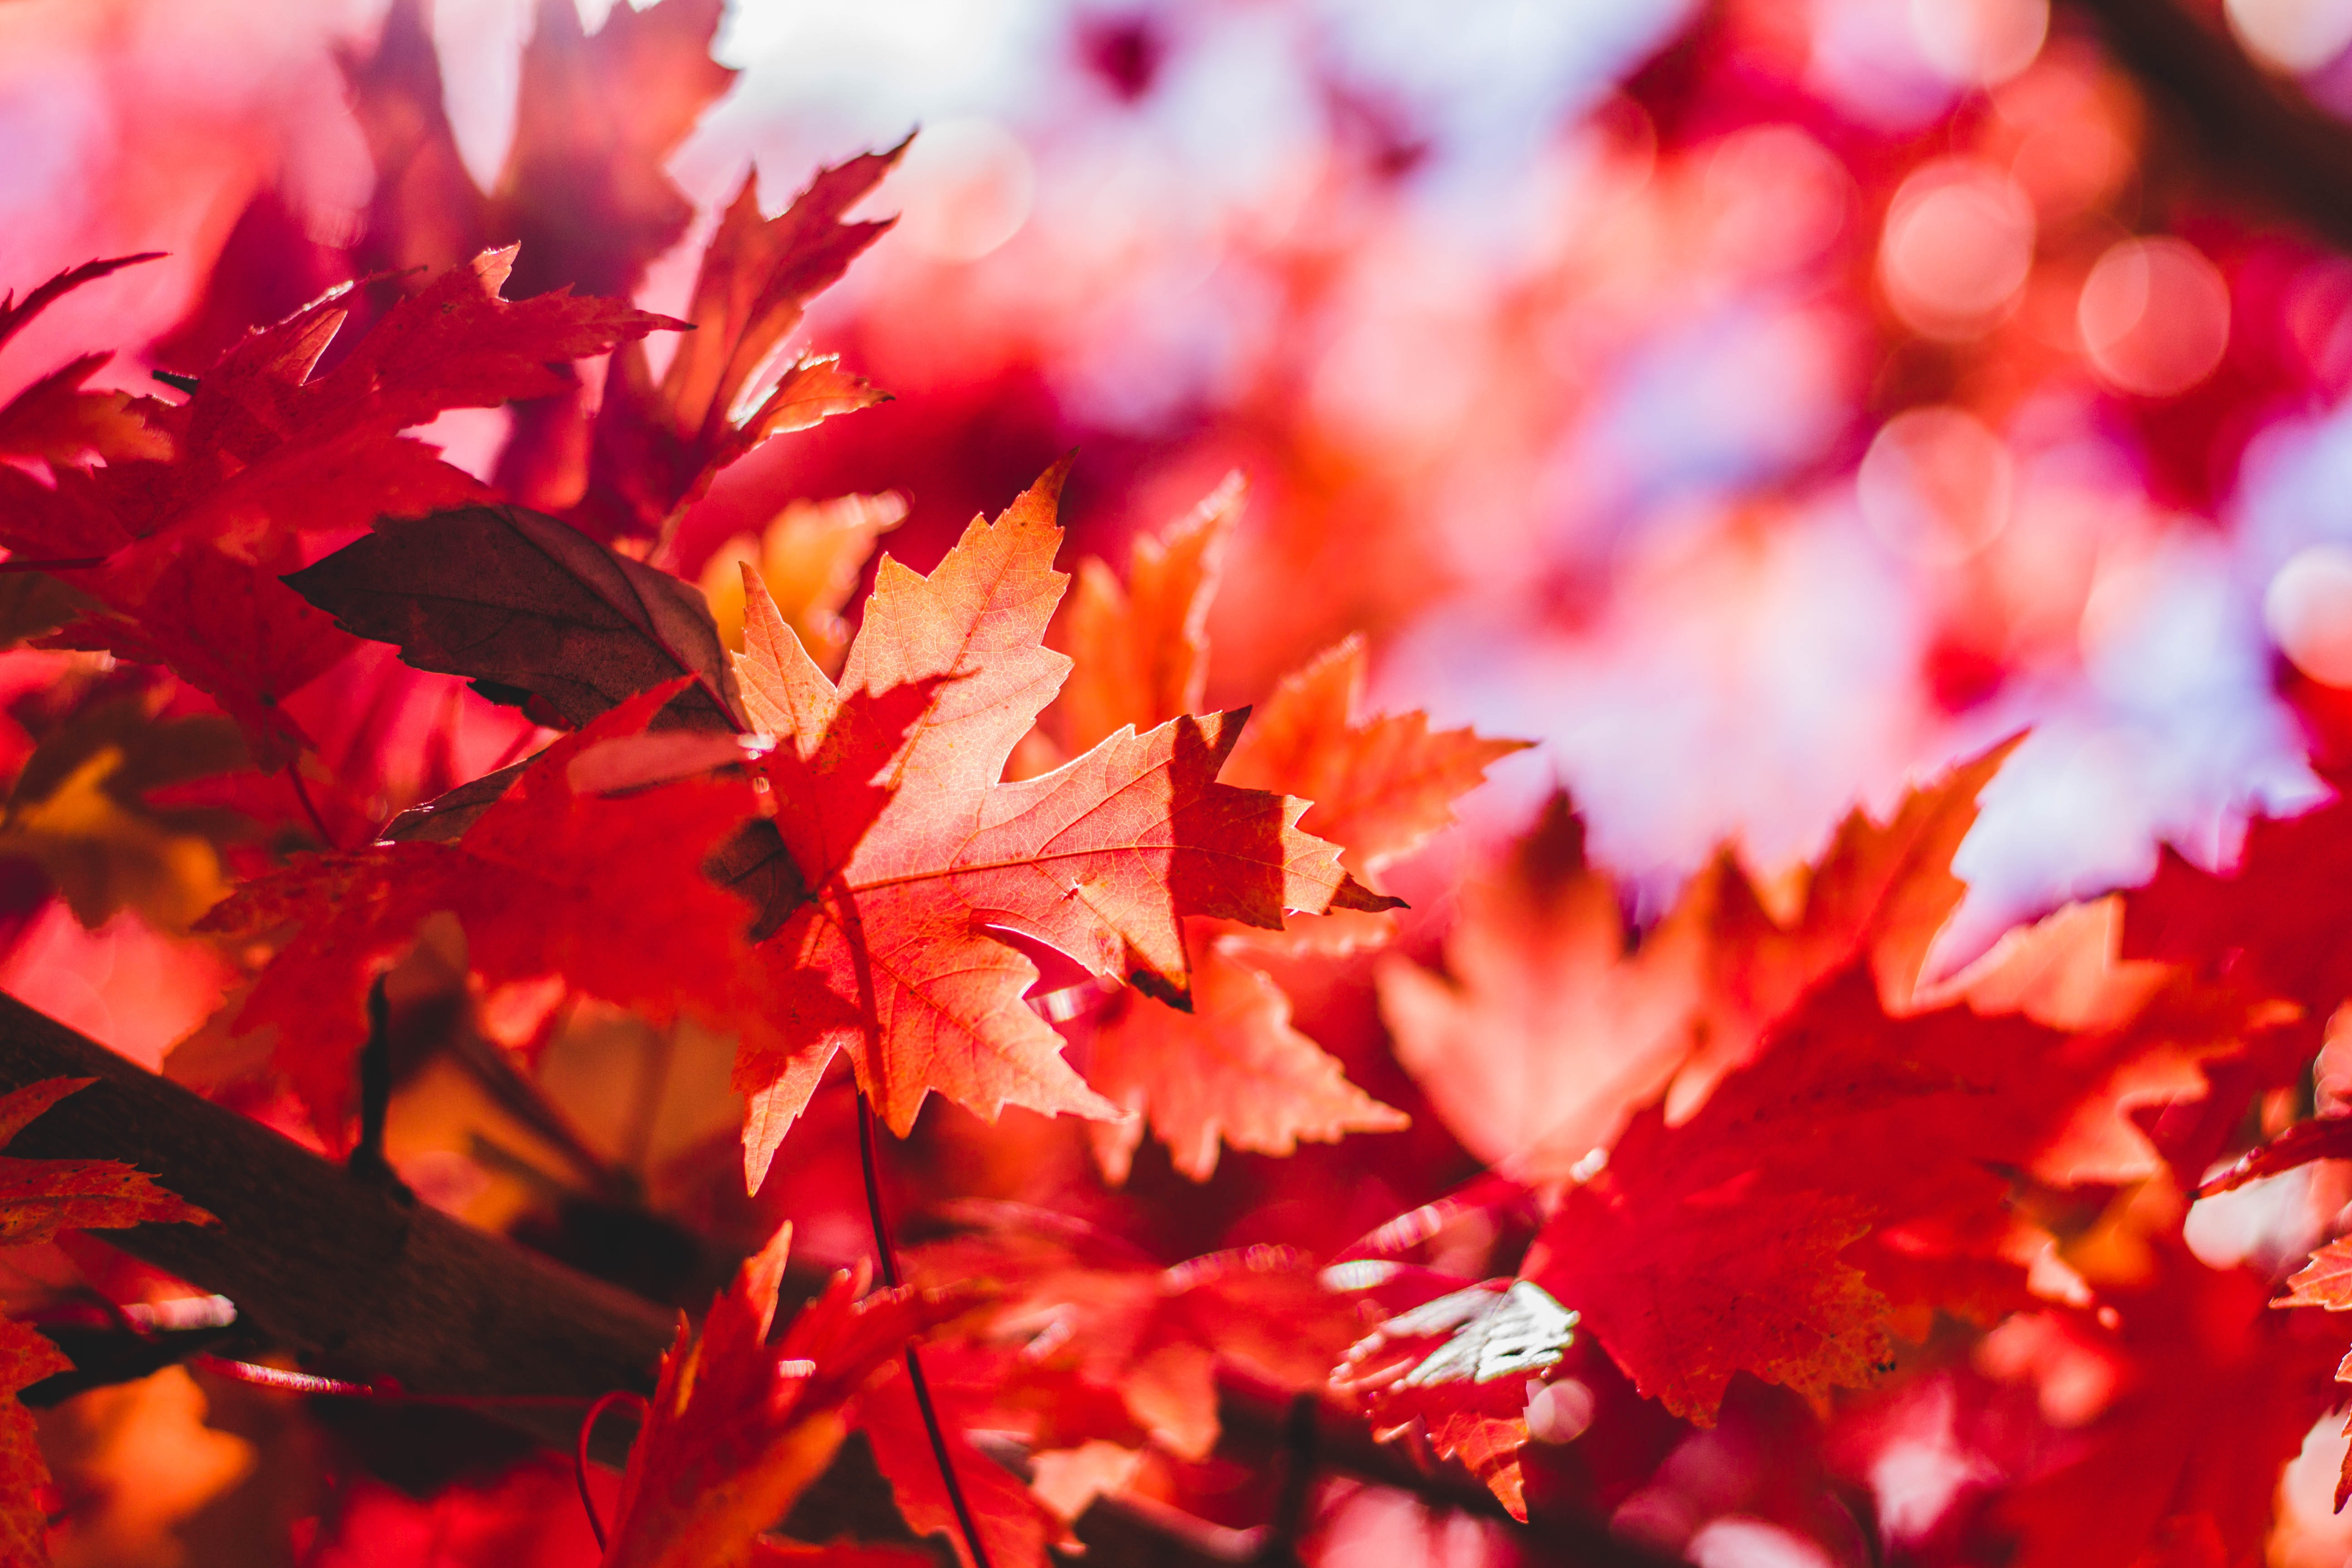 leafe red leaf maple branch autumn fall tree nature au wallpaper color amazing